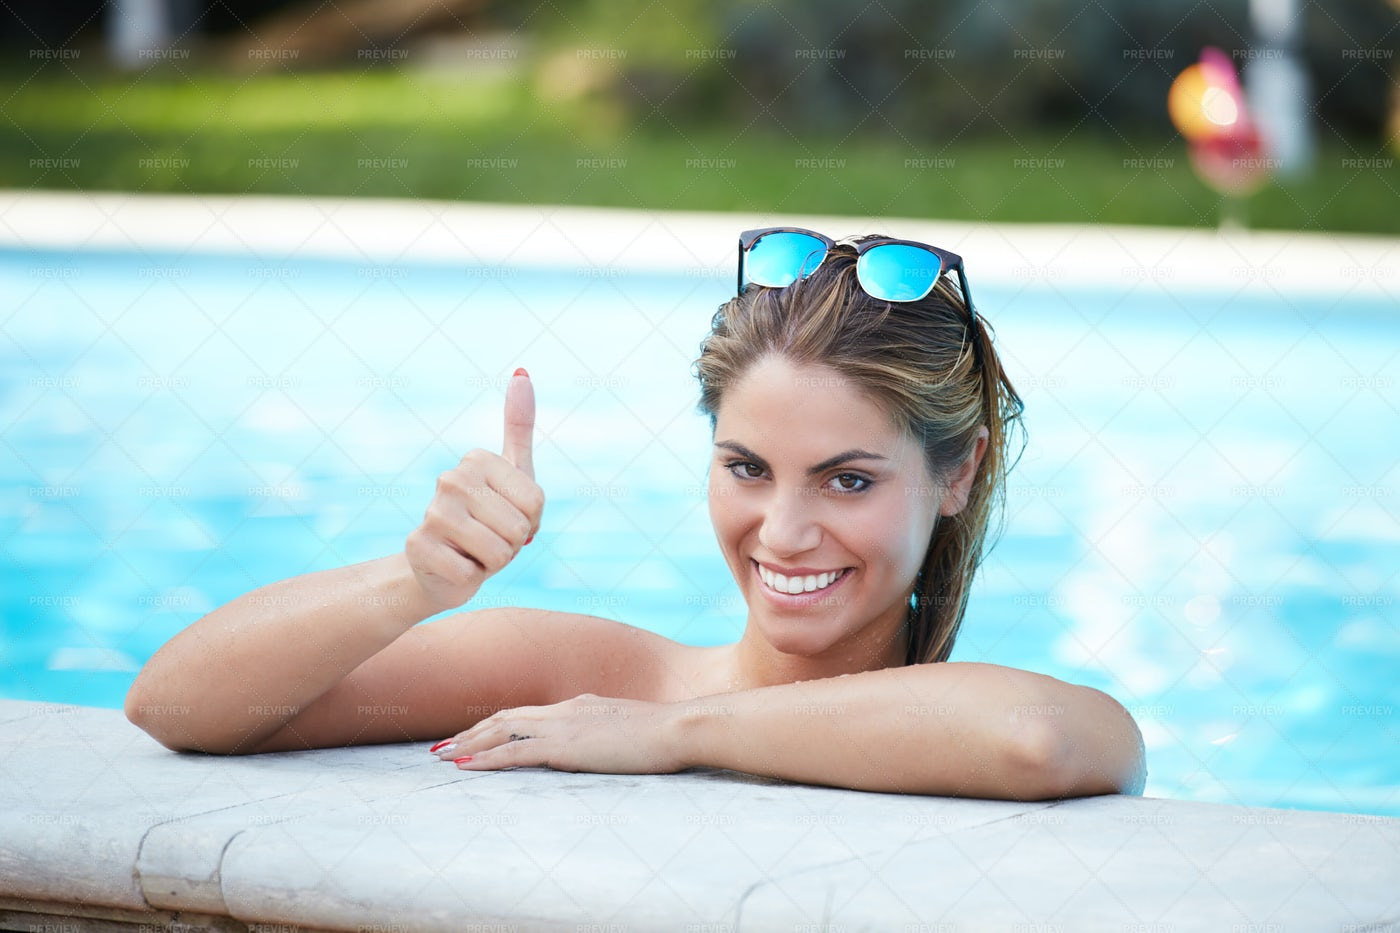 Thumbs Up In The Pool: Stock Photos